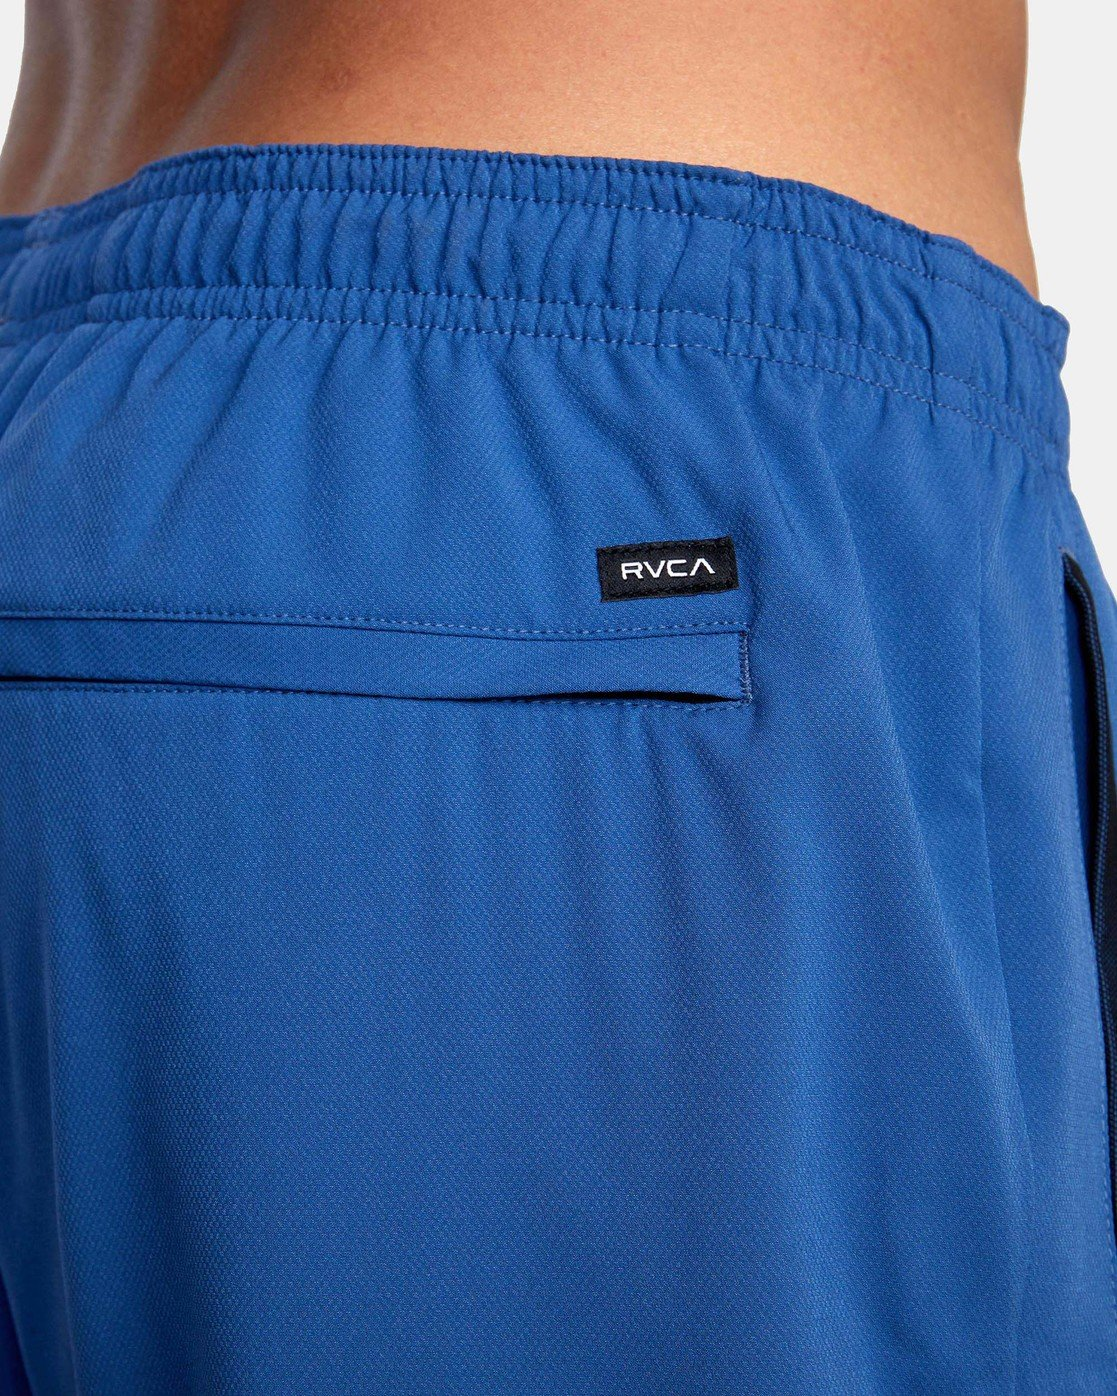 "9 YOGGER STRETCH ATHLETIC SHORTS 17"" Blue V201TRYS RVCA"